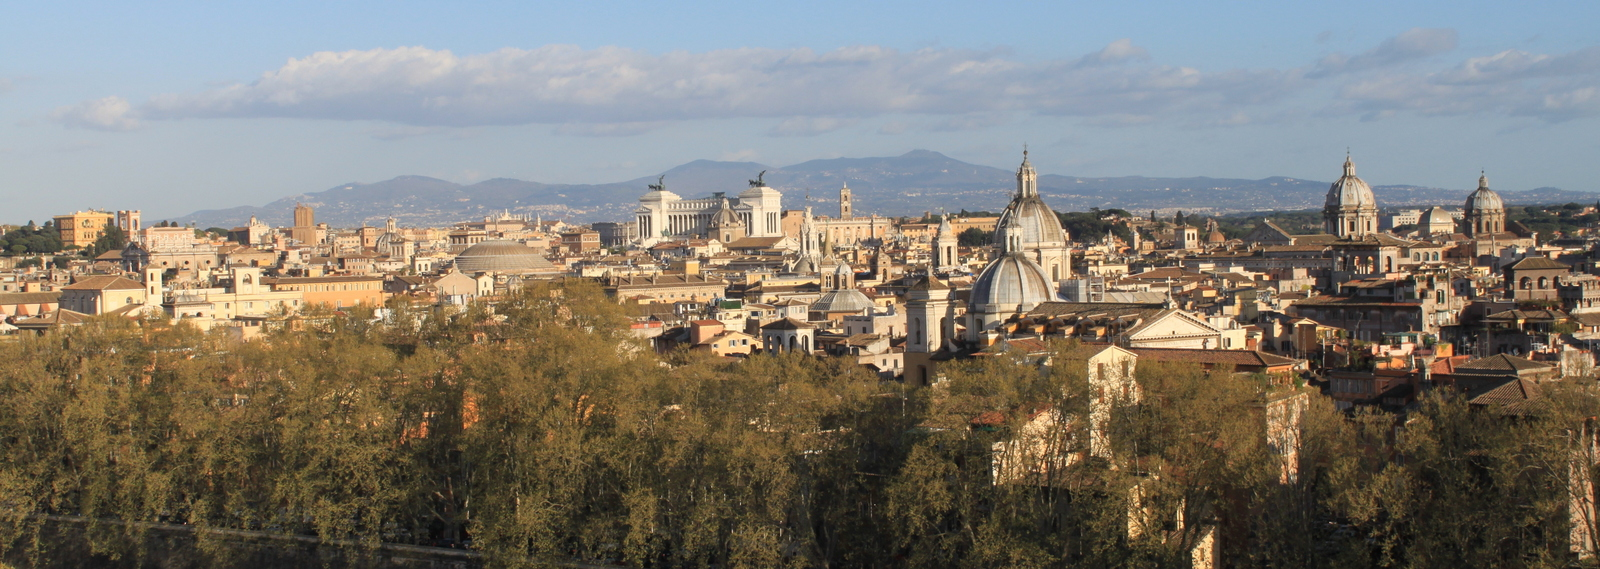 Rome, View from Castel Sant Angelo